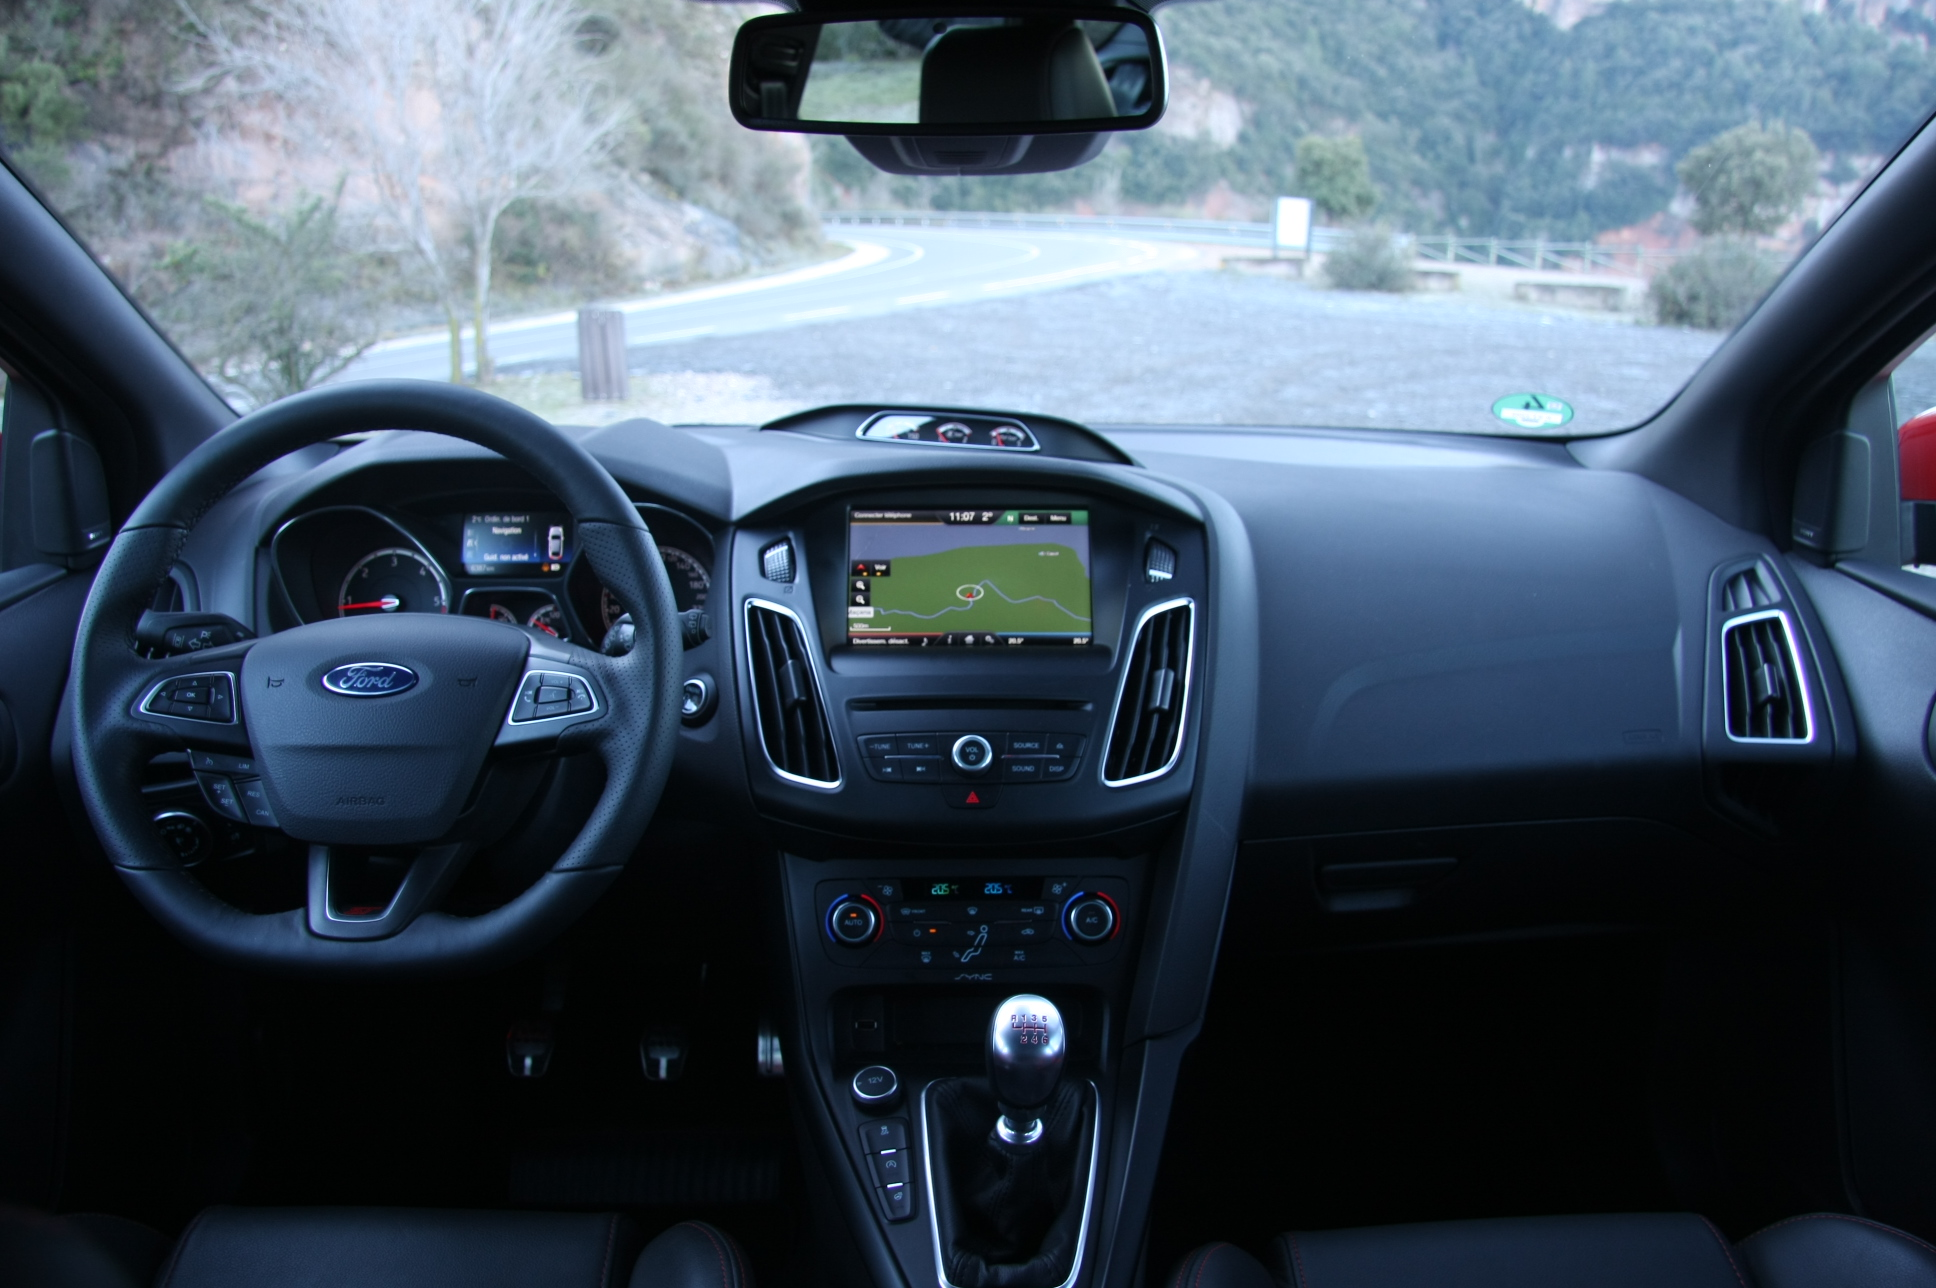 Essai vid o ford focus st restyl e gaz ole for Ford focus 2006 interieur